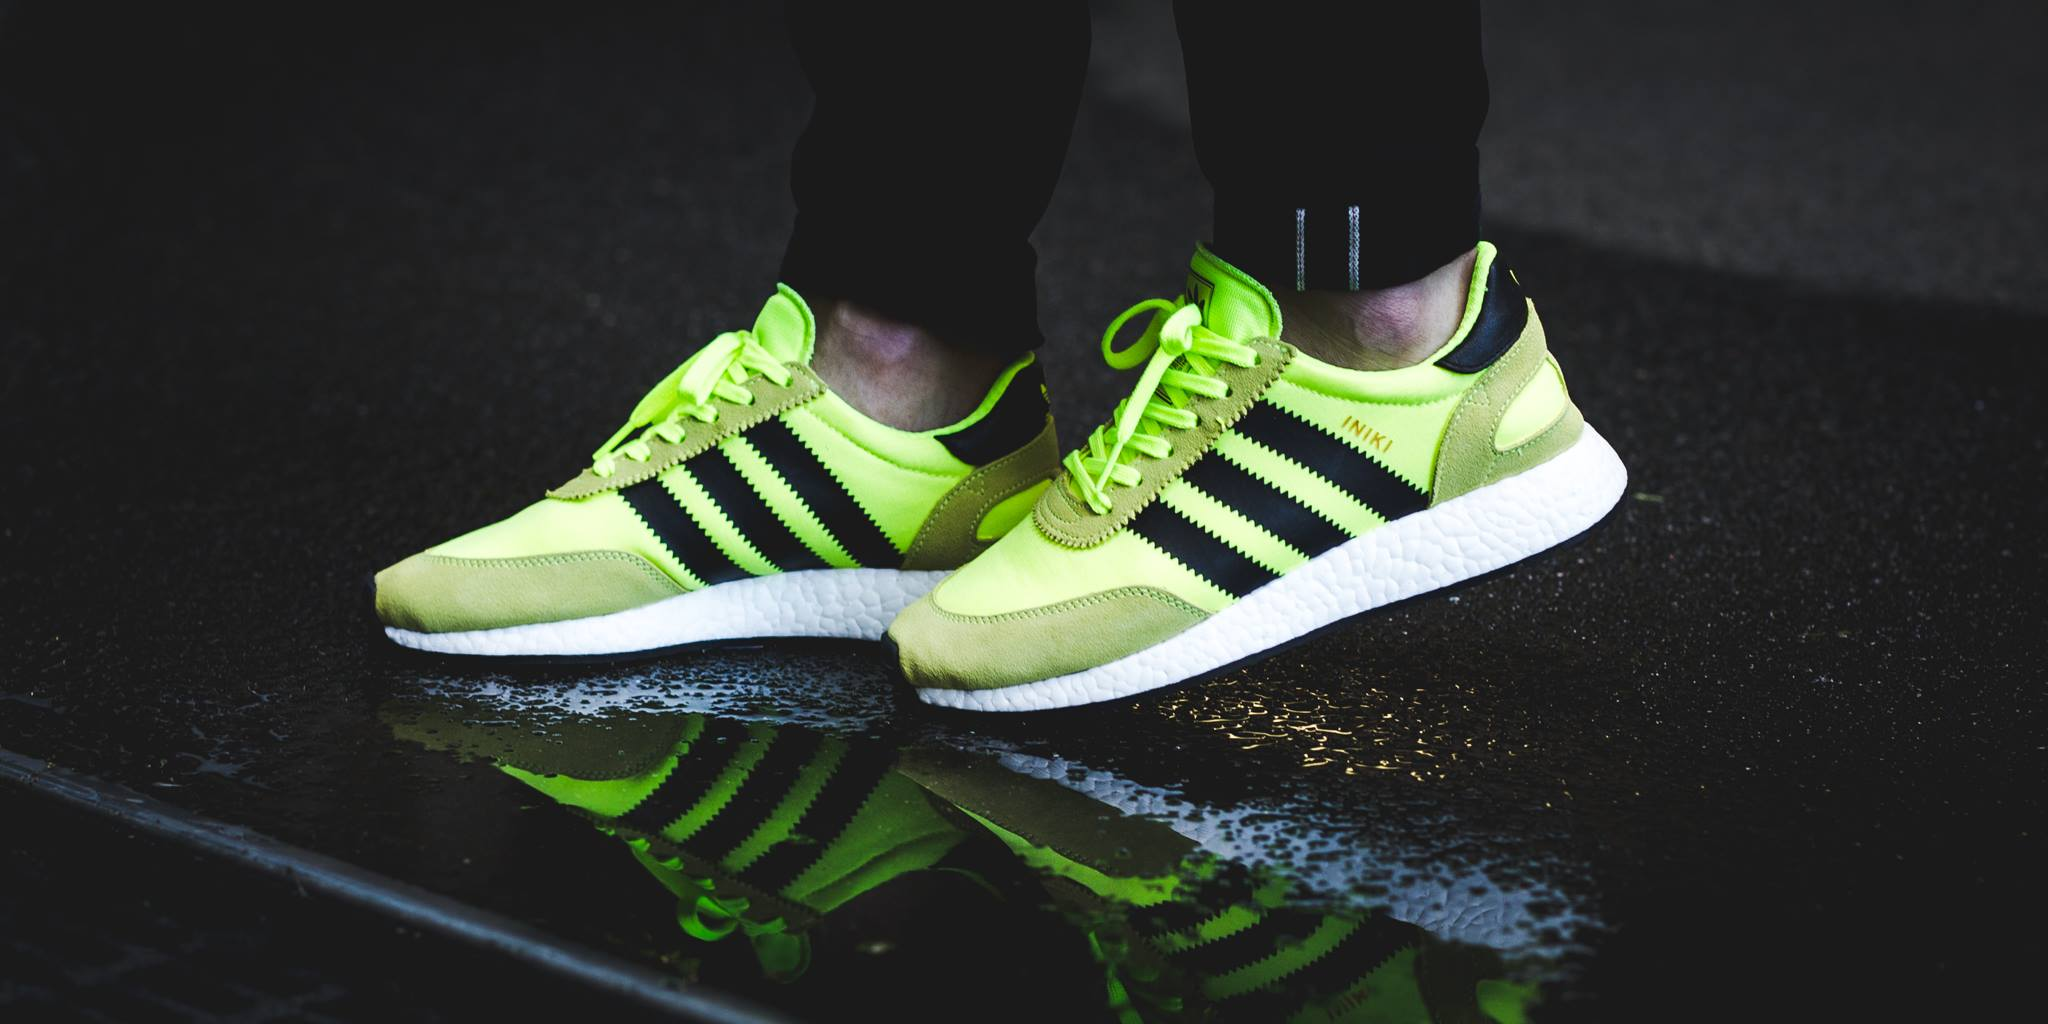 check out 4a251 9aa38 adidas Originals will be releasing the Iniki Runner in a Solar Yellow  colorway for the summer. Decked out in an eye-catching Solar tone, the adidas  Iniki ...